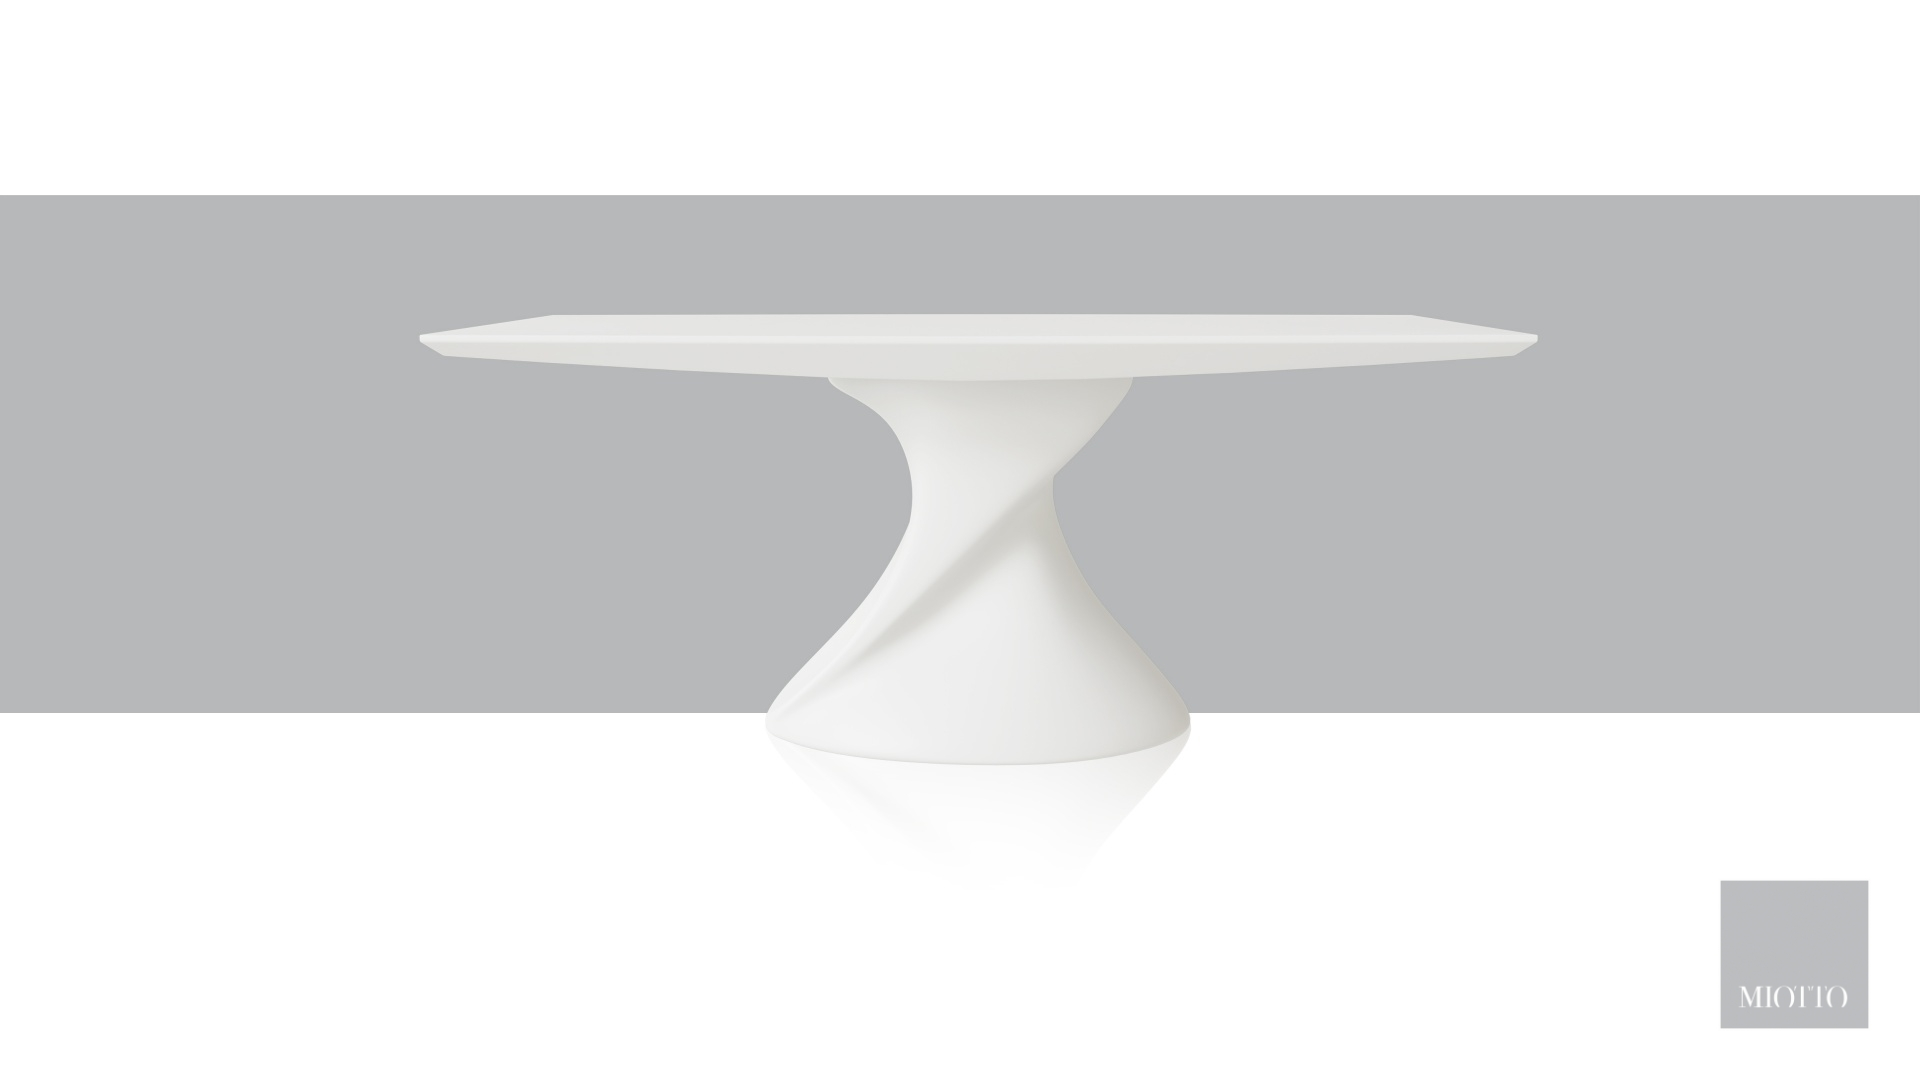 miotto_Bibiana dining table 180 front miotto furniture t